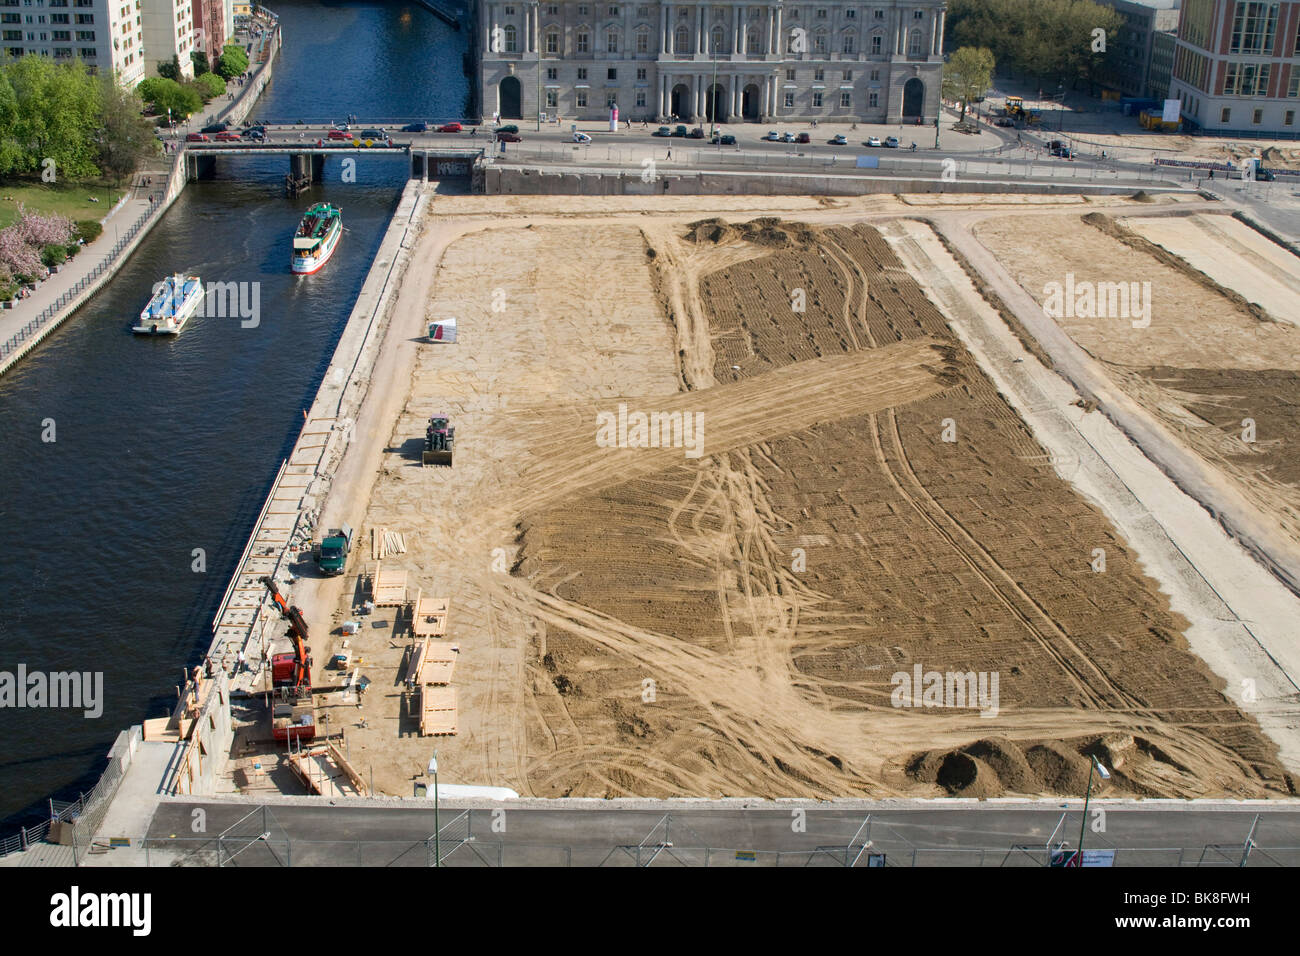 Site of the demolished Palast der Republik, Berlin, Germany, Europe - Stock Image